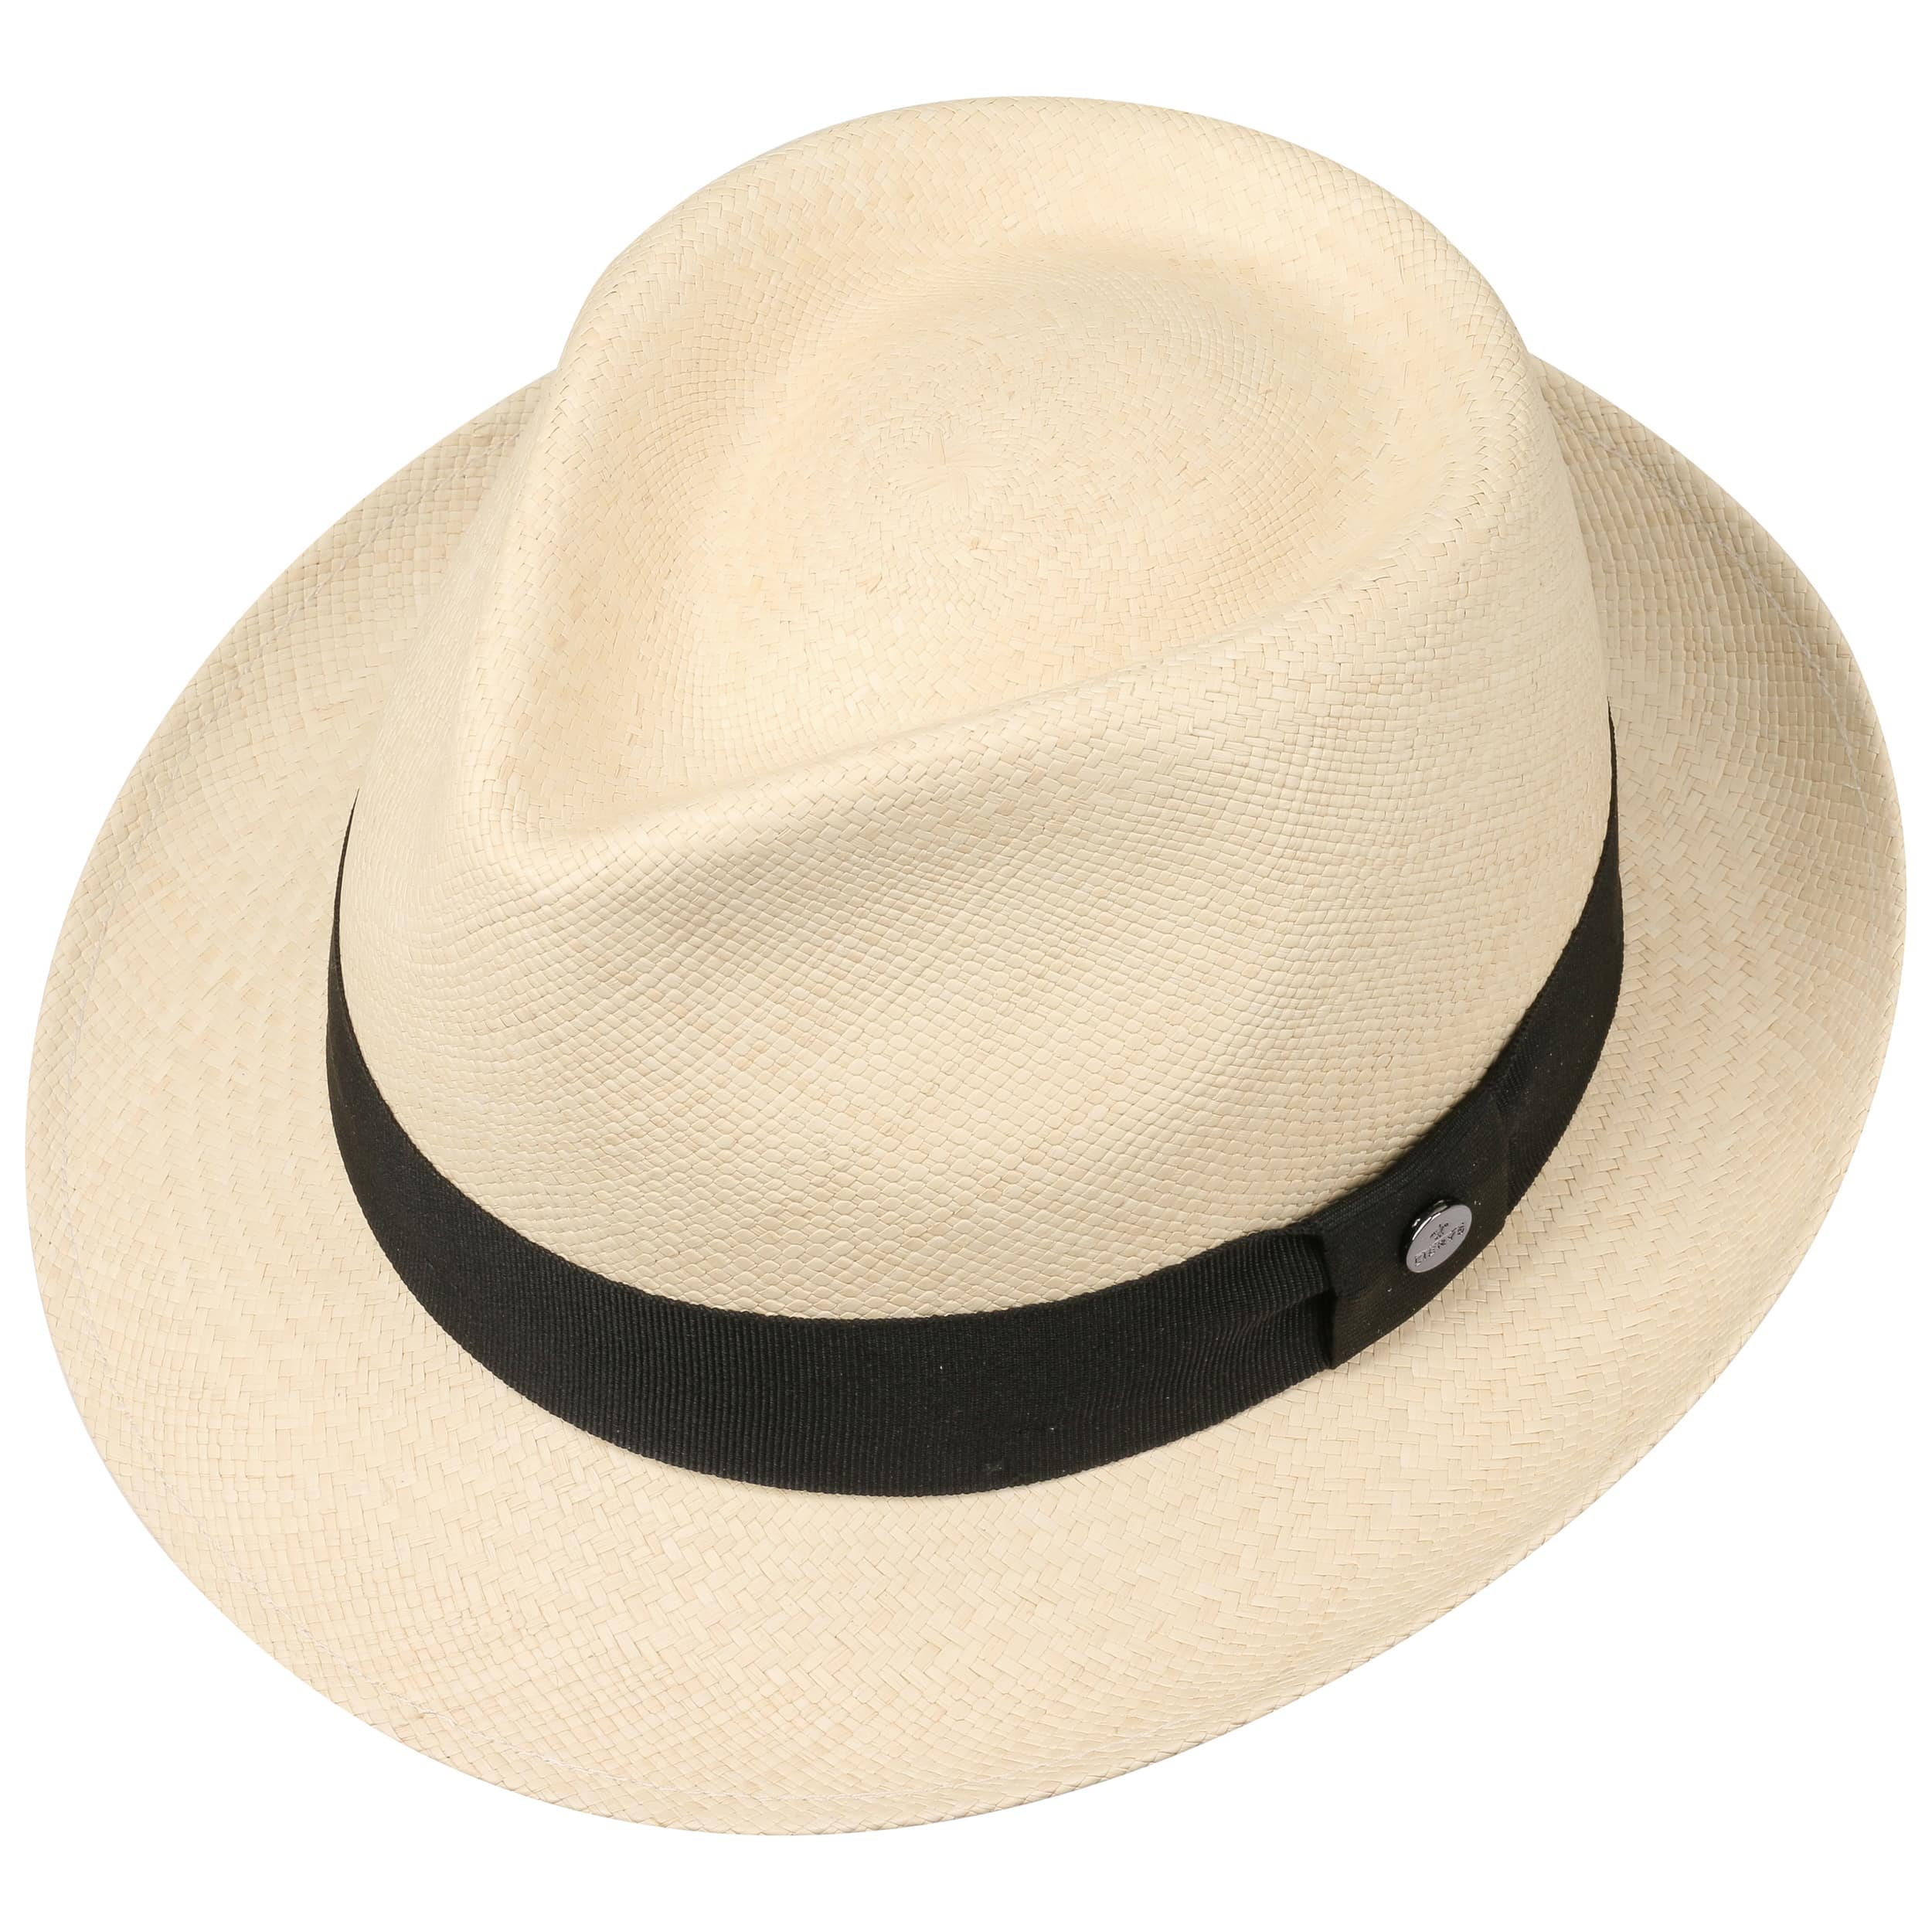 The Trilby Panama Hat by Lierys - nature-black 1 ... b1ee9723dcee